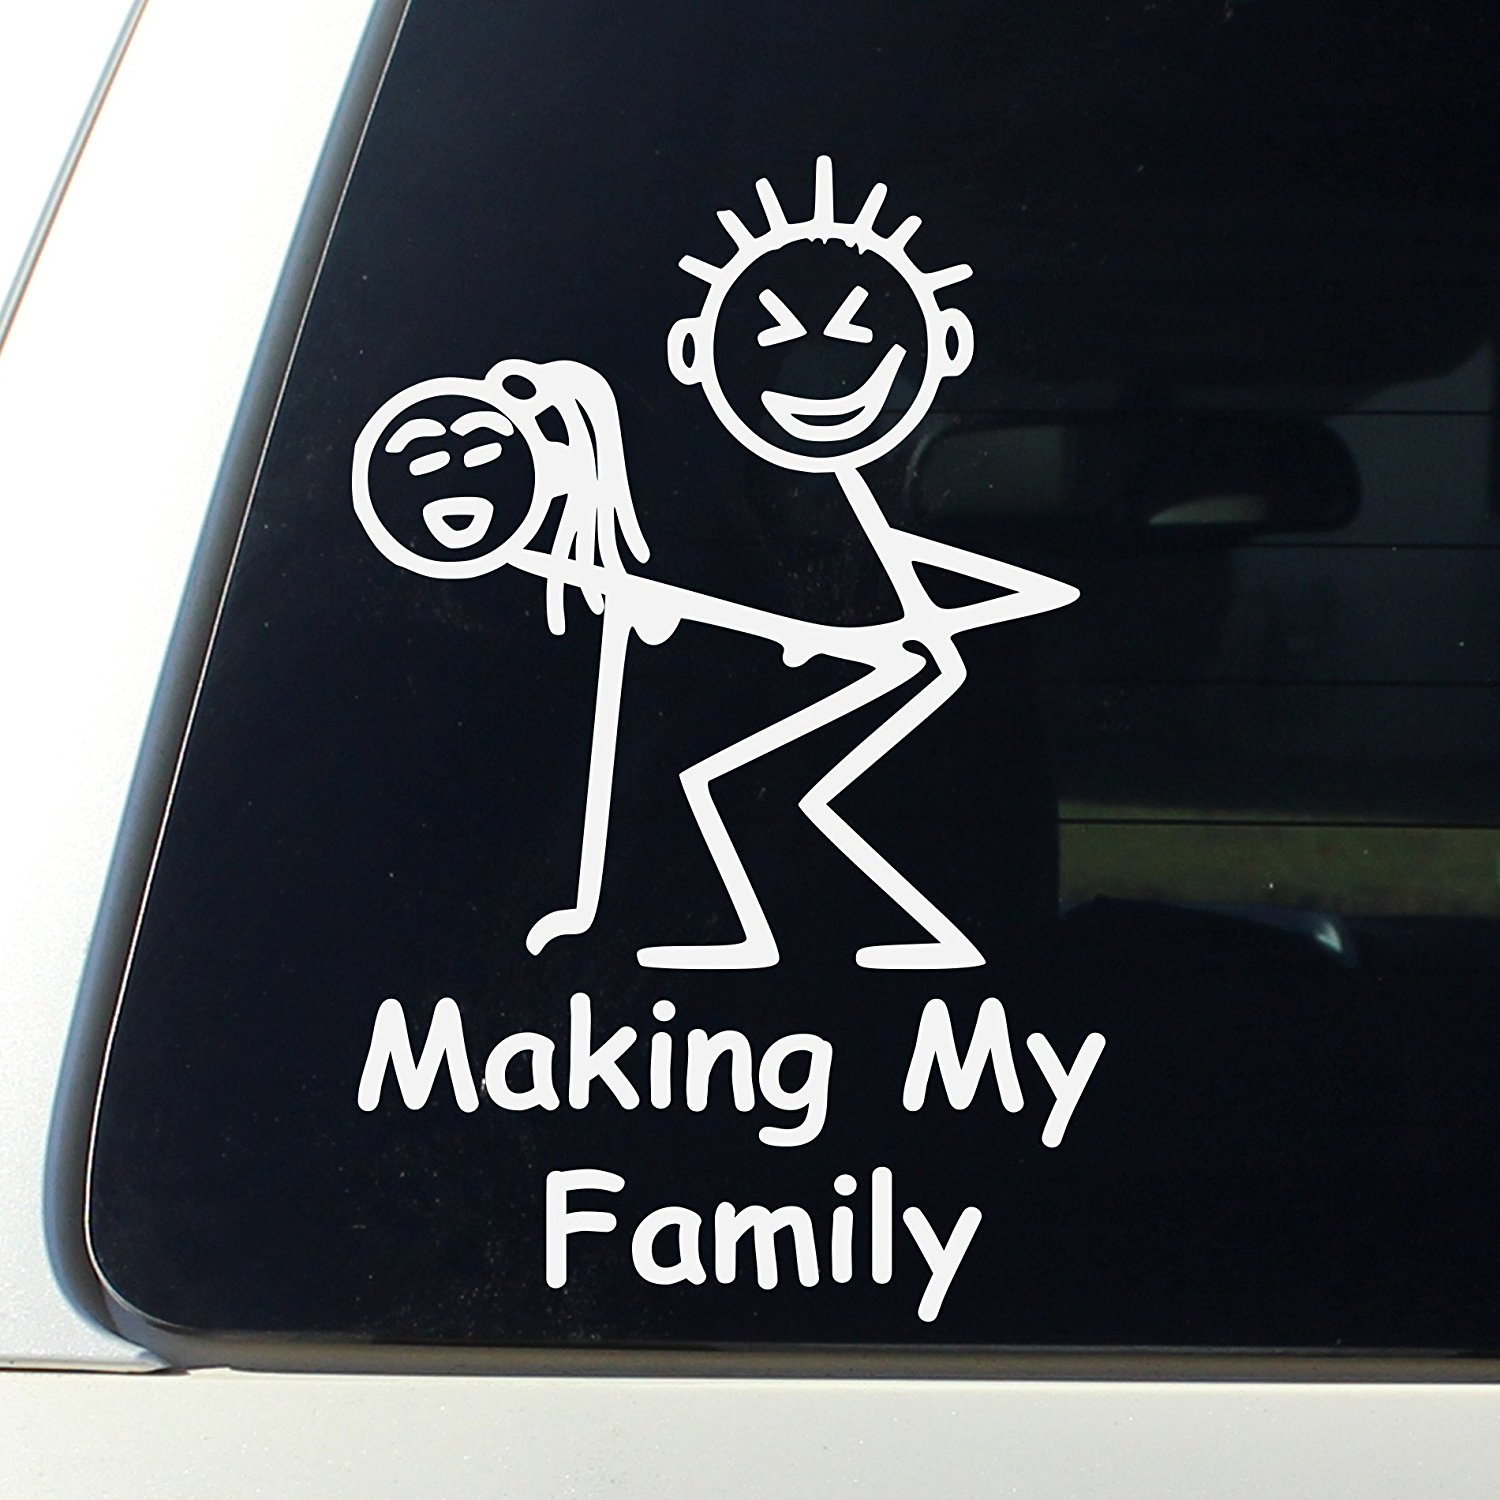 Making My Family Funny Stick Figure Family - Decal Bumper Sticker Window - Funny Jeep Stickers Decals Funny Signs